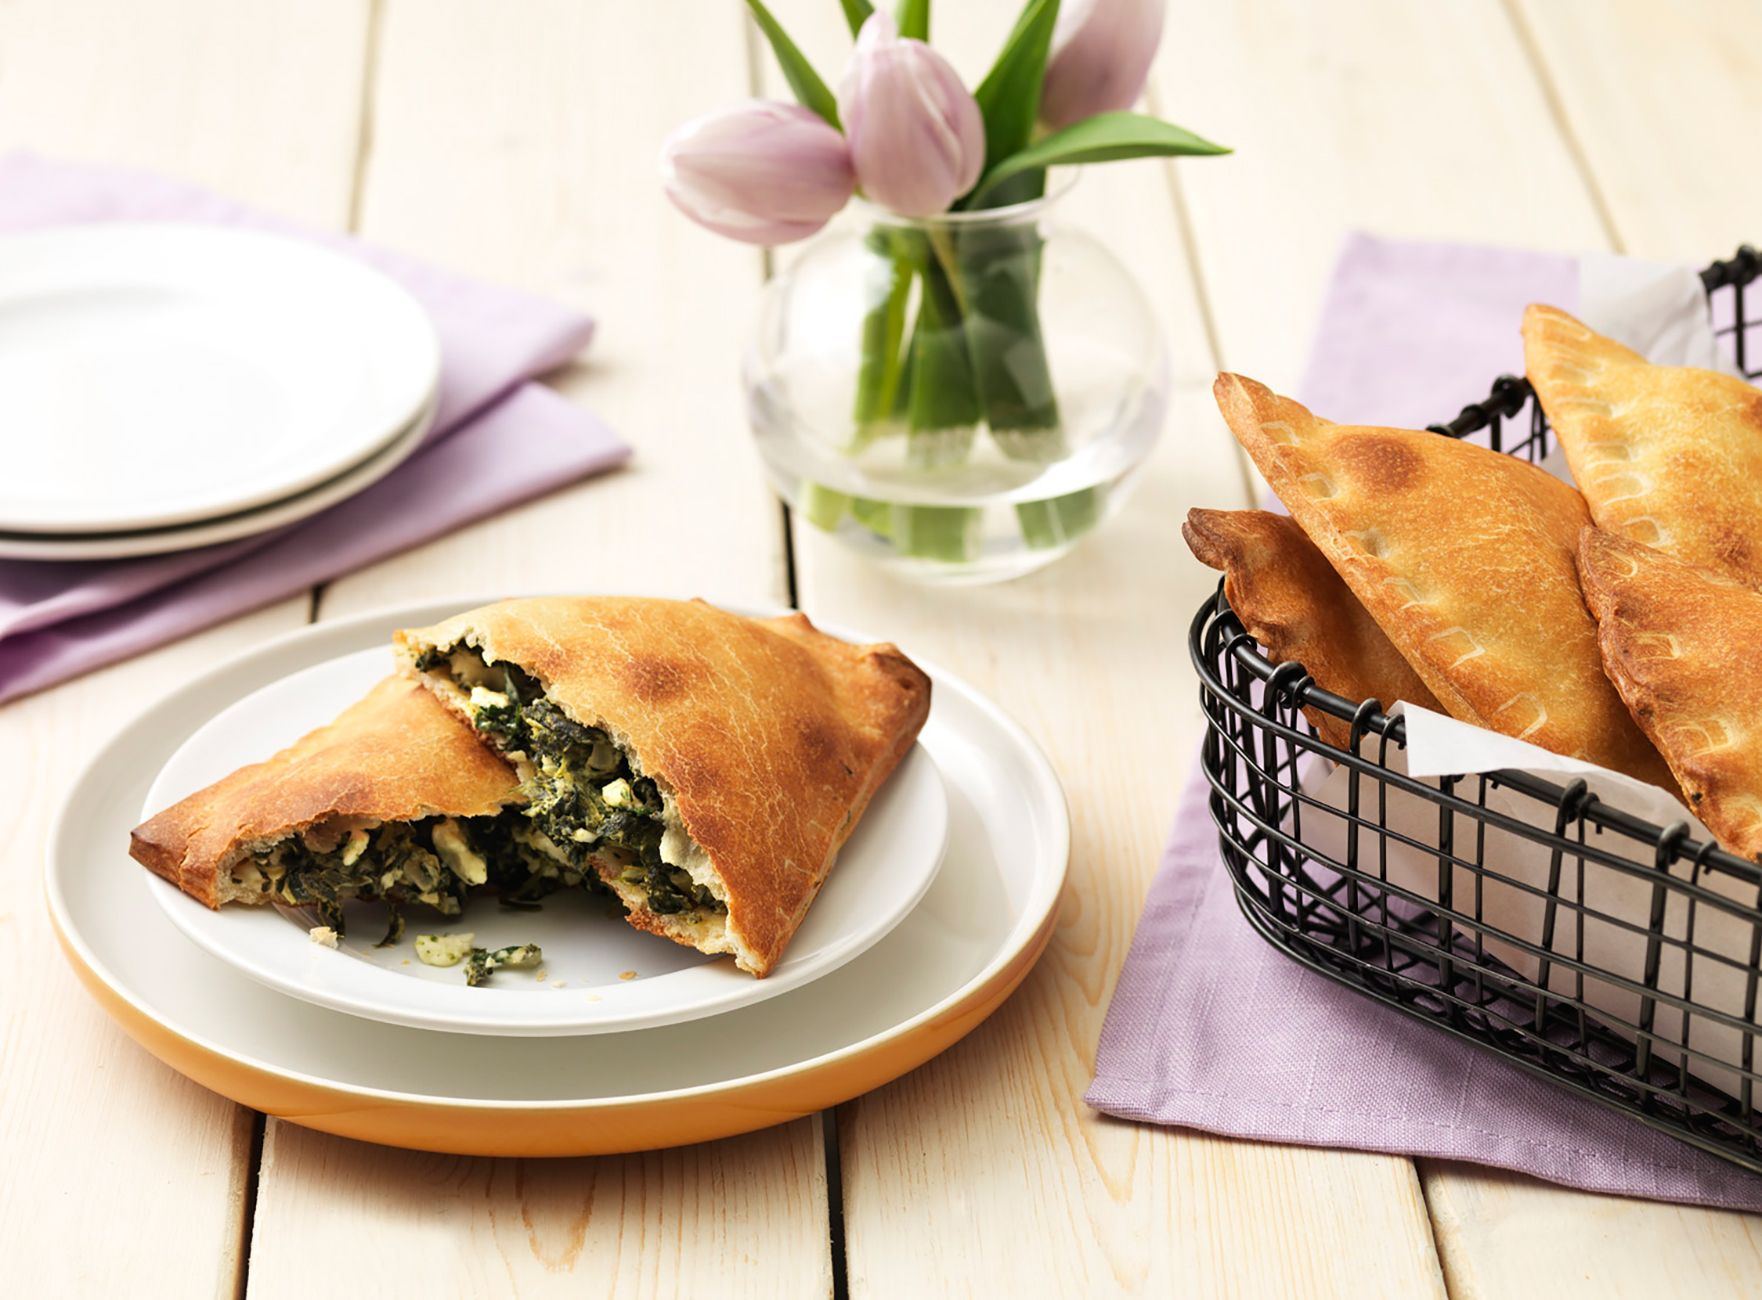 This Greek spinach pie is a great dish for your Orthodox Easter meal and other celebrations of spring!